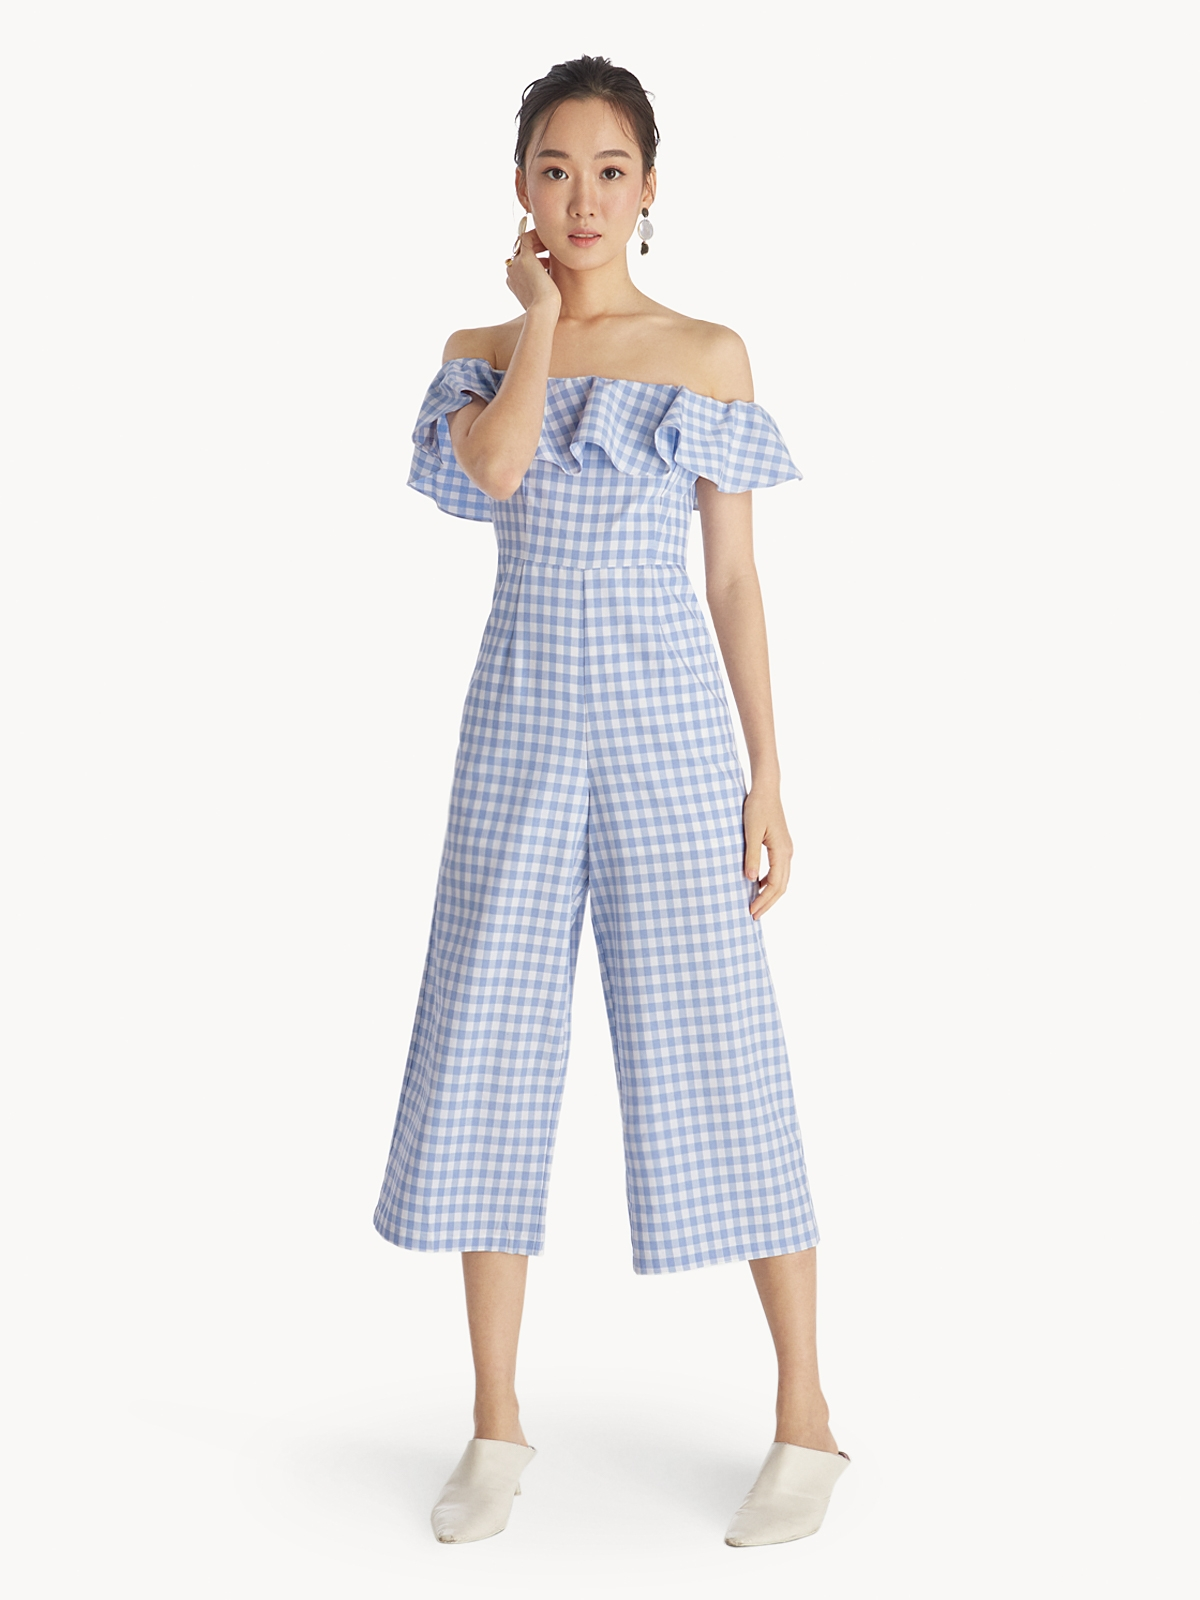 91a93524a3b Gingham Ruffled Off Shoulder Jumpsuit - Blue - Pomelo Fashion